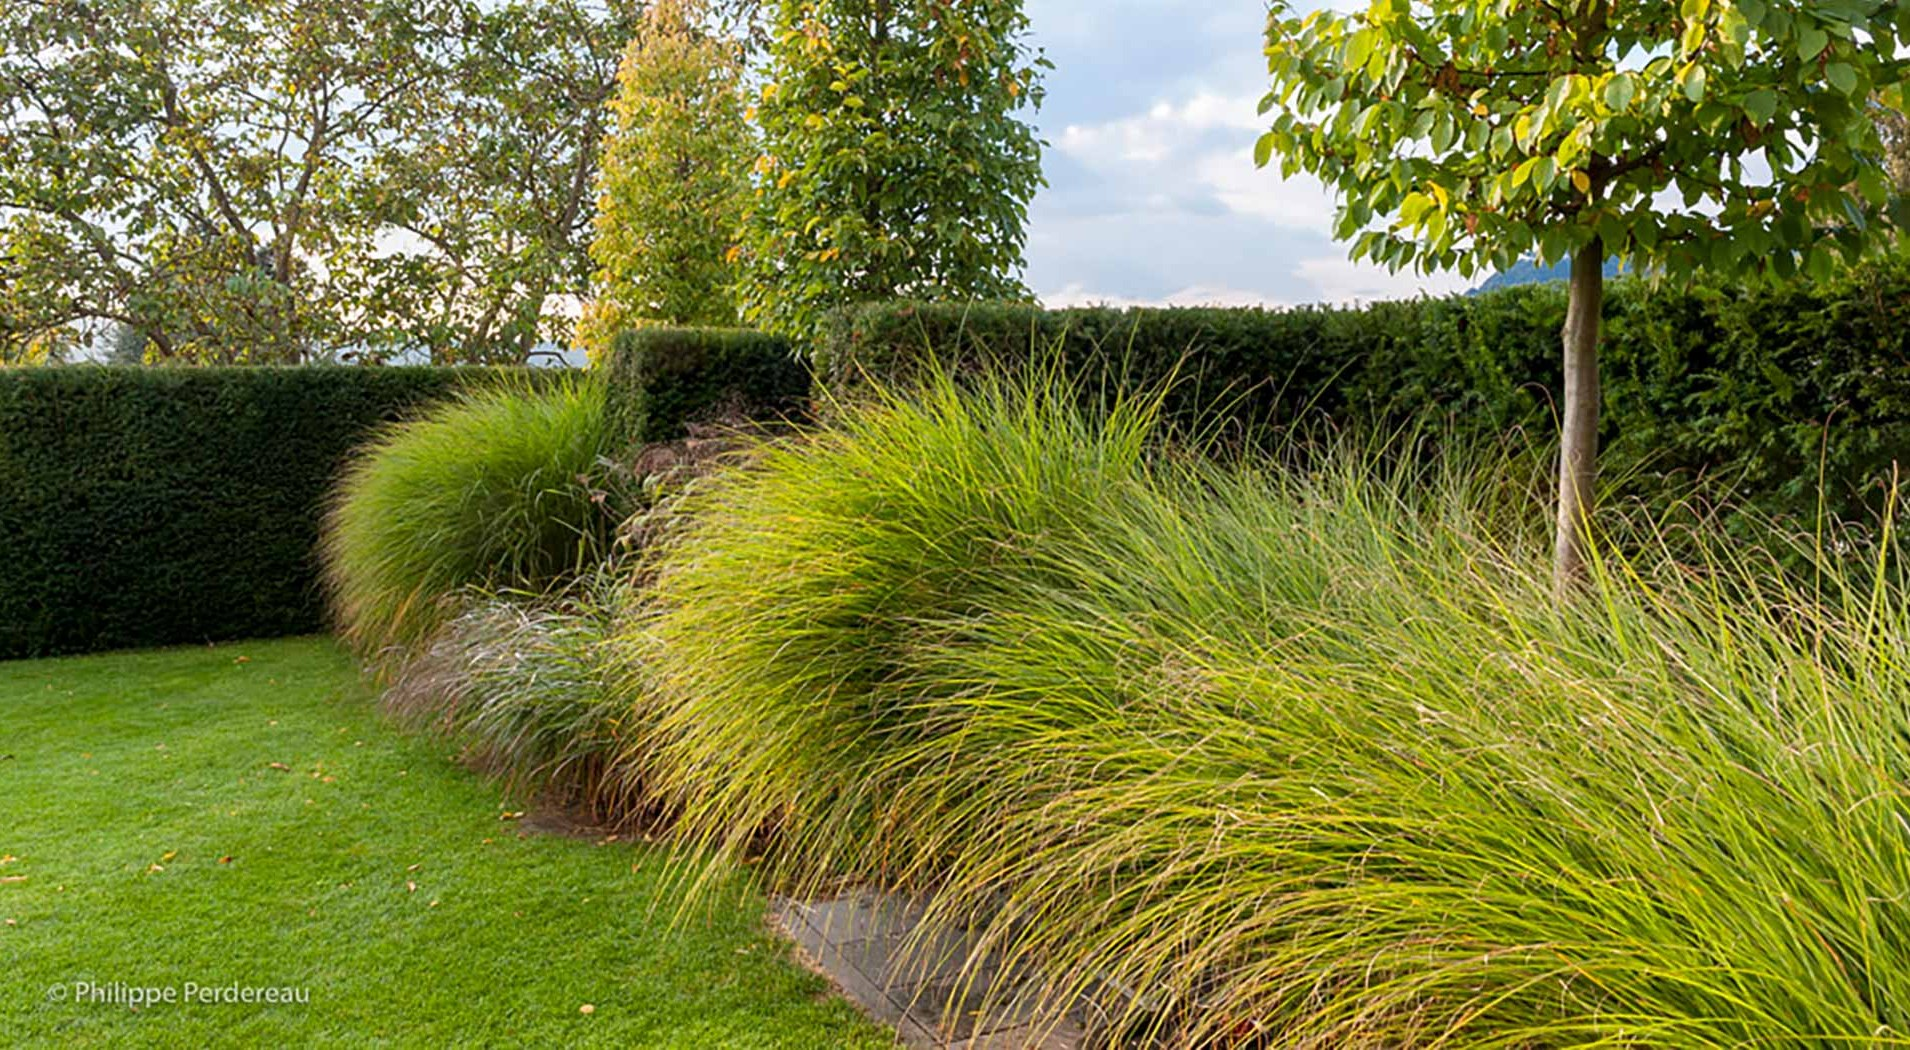 Grasses, hedges and trees as part of a garden